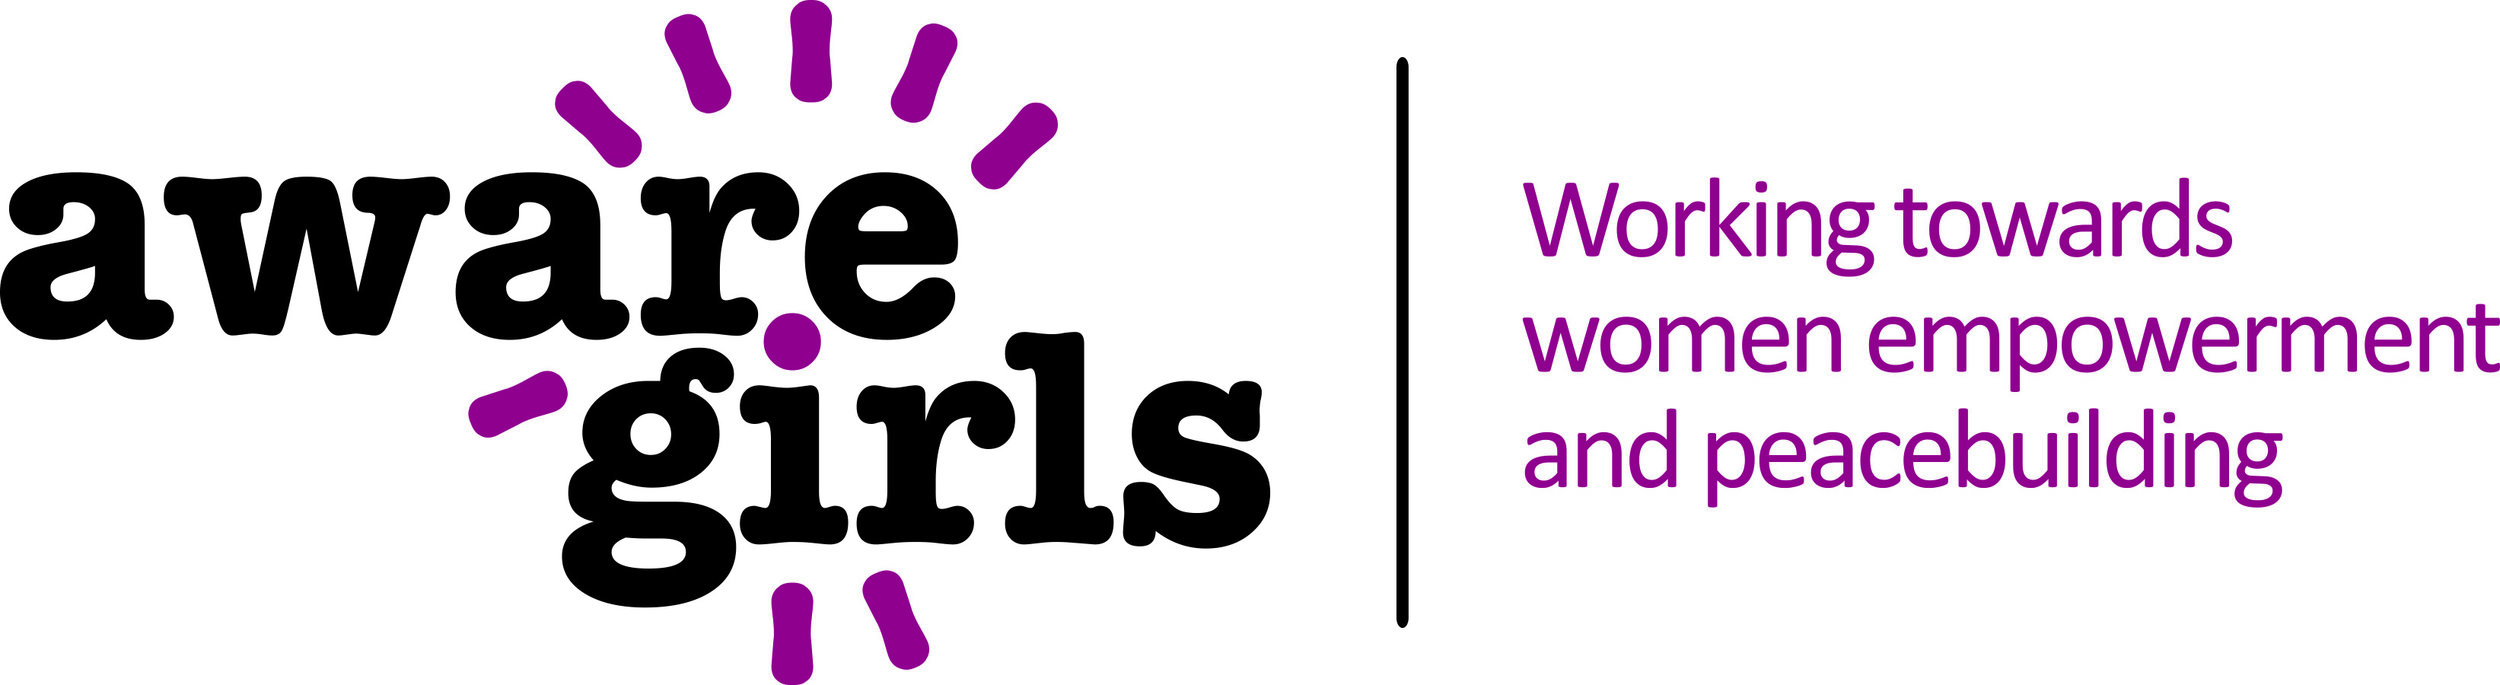 Aware Girls Logo.jpg